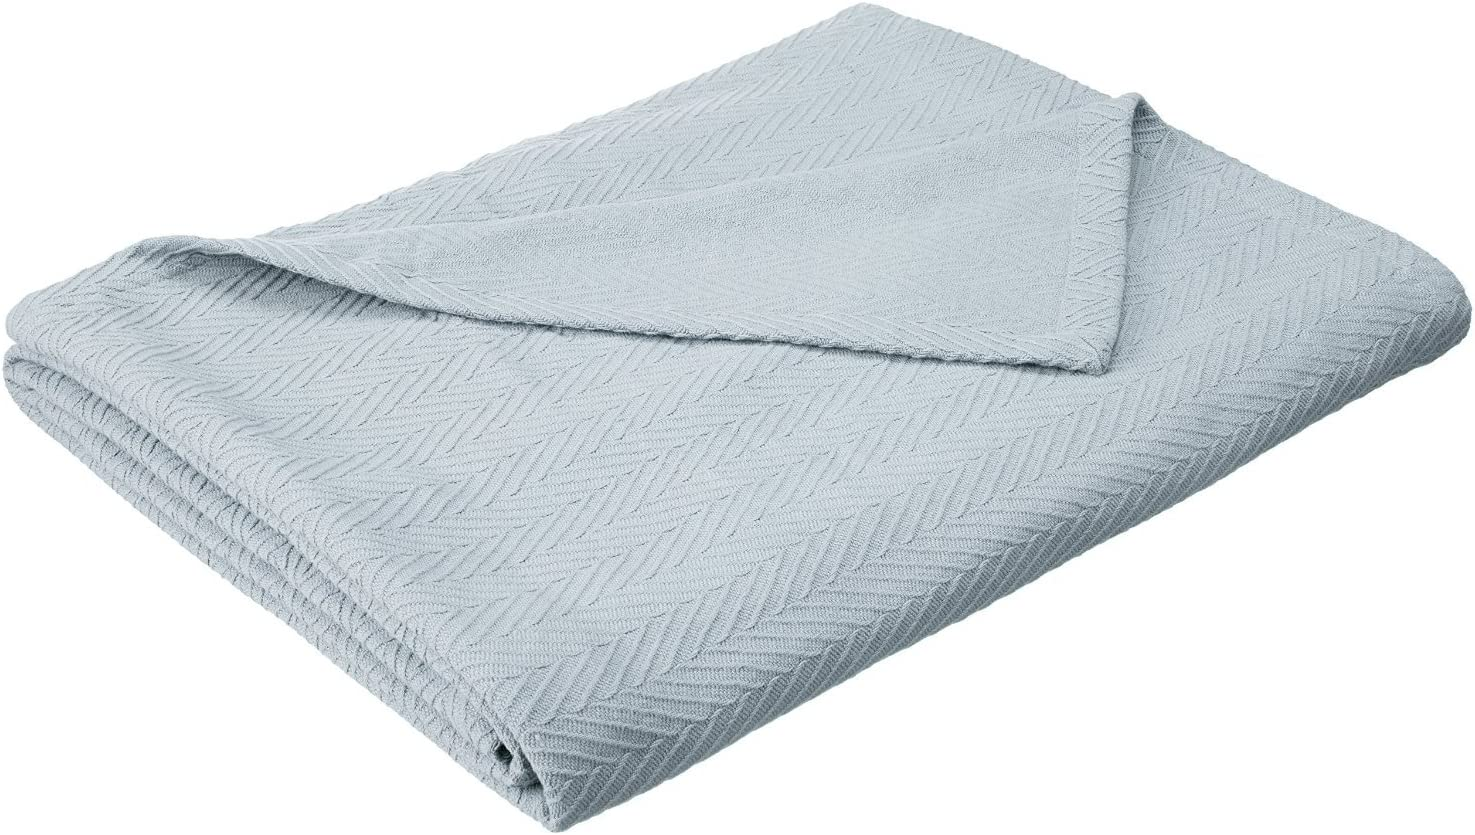 SUPERIOR 100% Cotton Thermal Blanket, Soft and Breathable Cotton for All Seasons, Bed Blanket and Oversized Throw Blanket with Metro Herringbone Weave Pattern - King Size, Light Blue